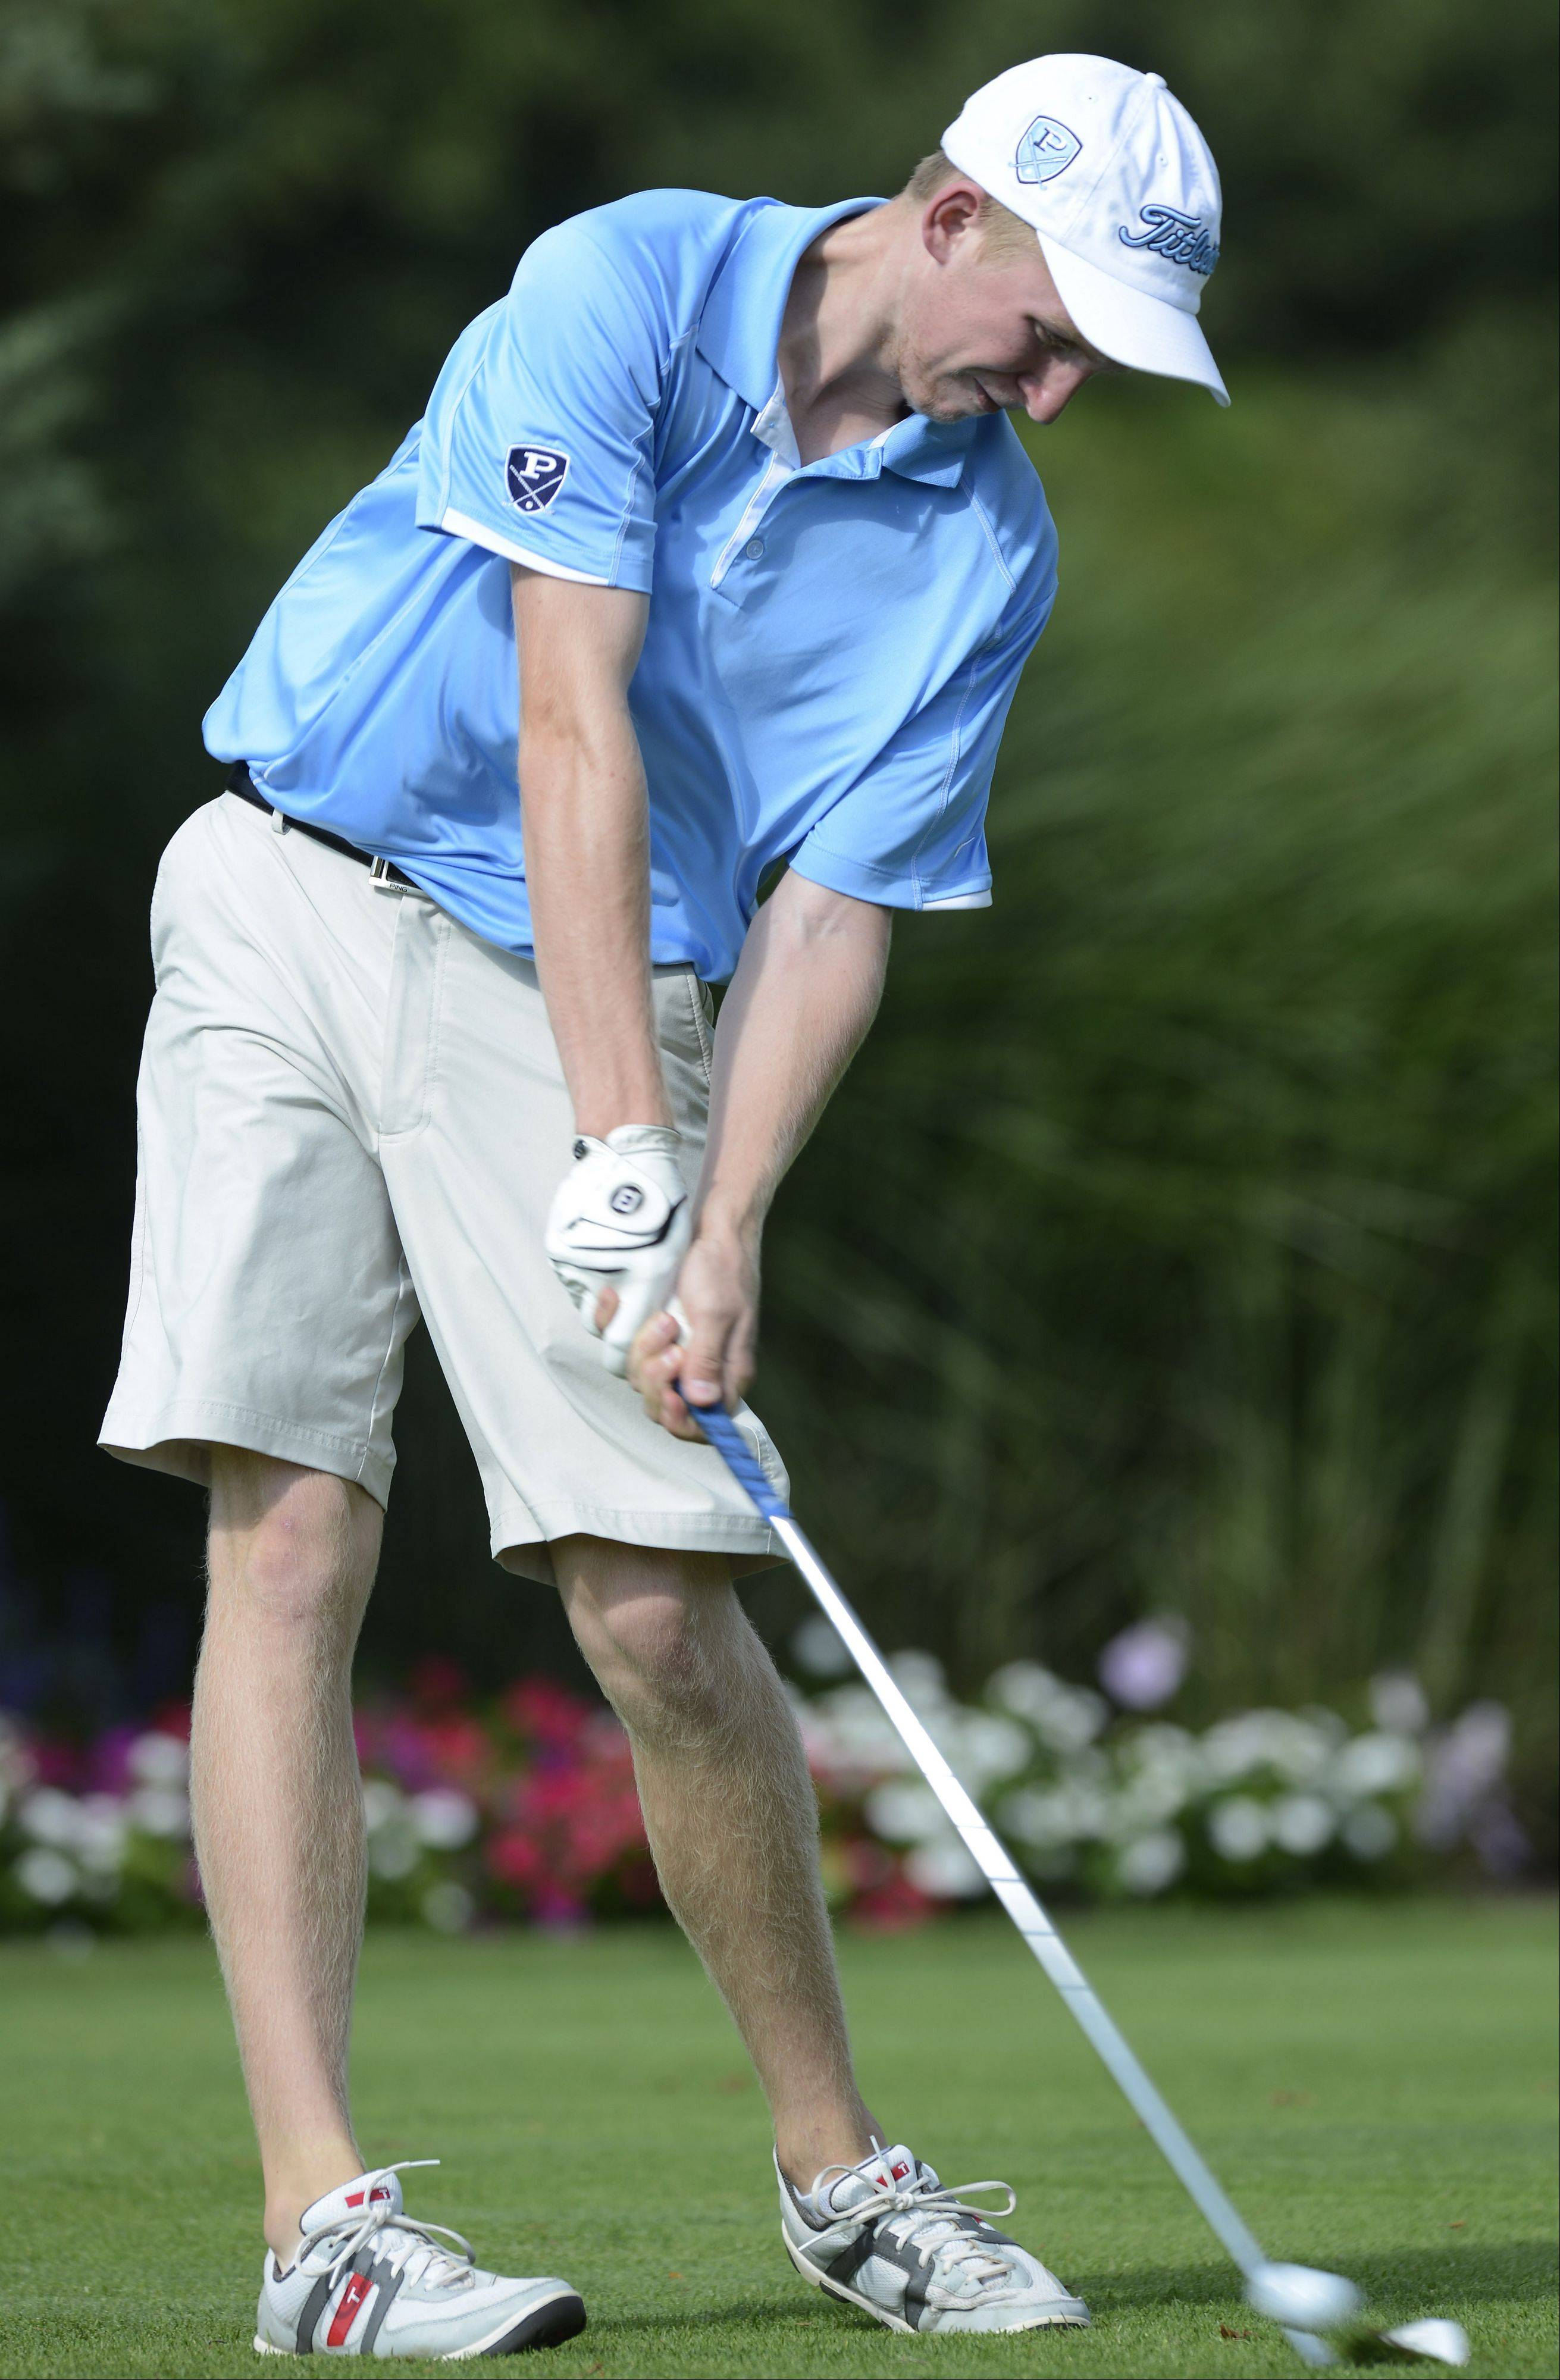 Prospect's Reid Dahlstrom tees off on No. 2 at Palatine Hills on Wednesday.